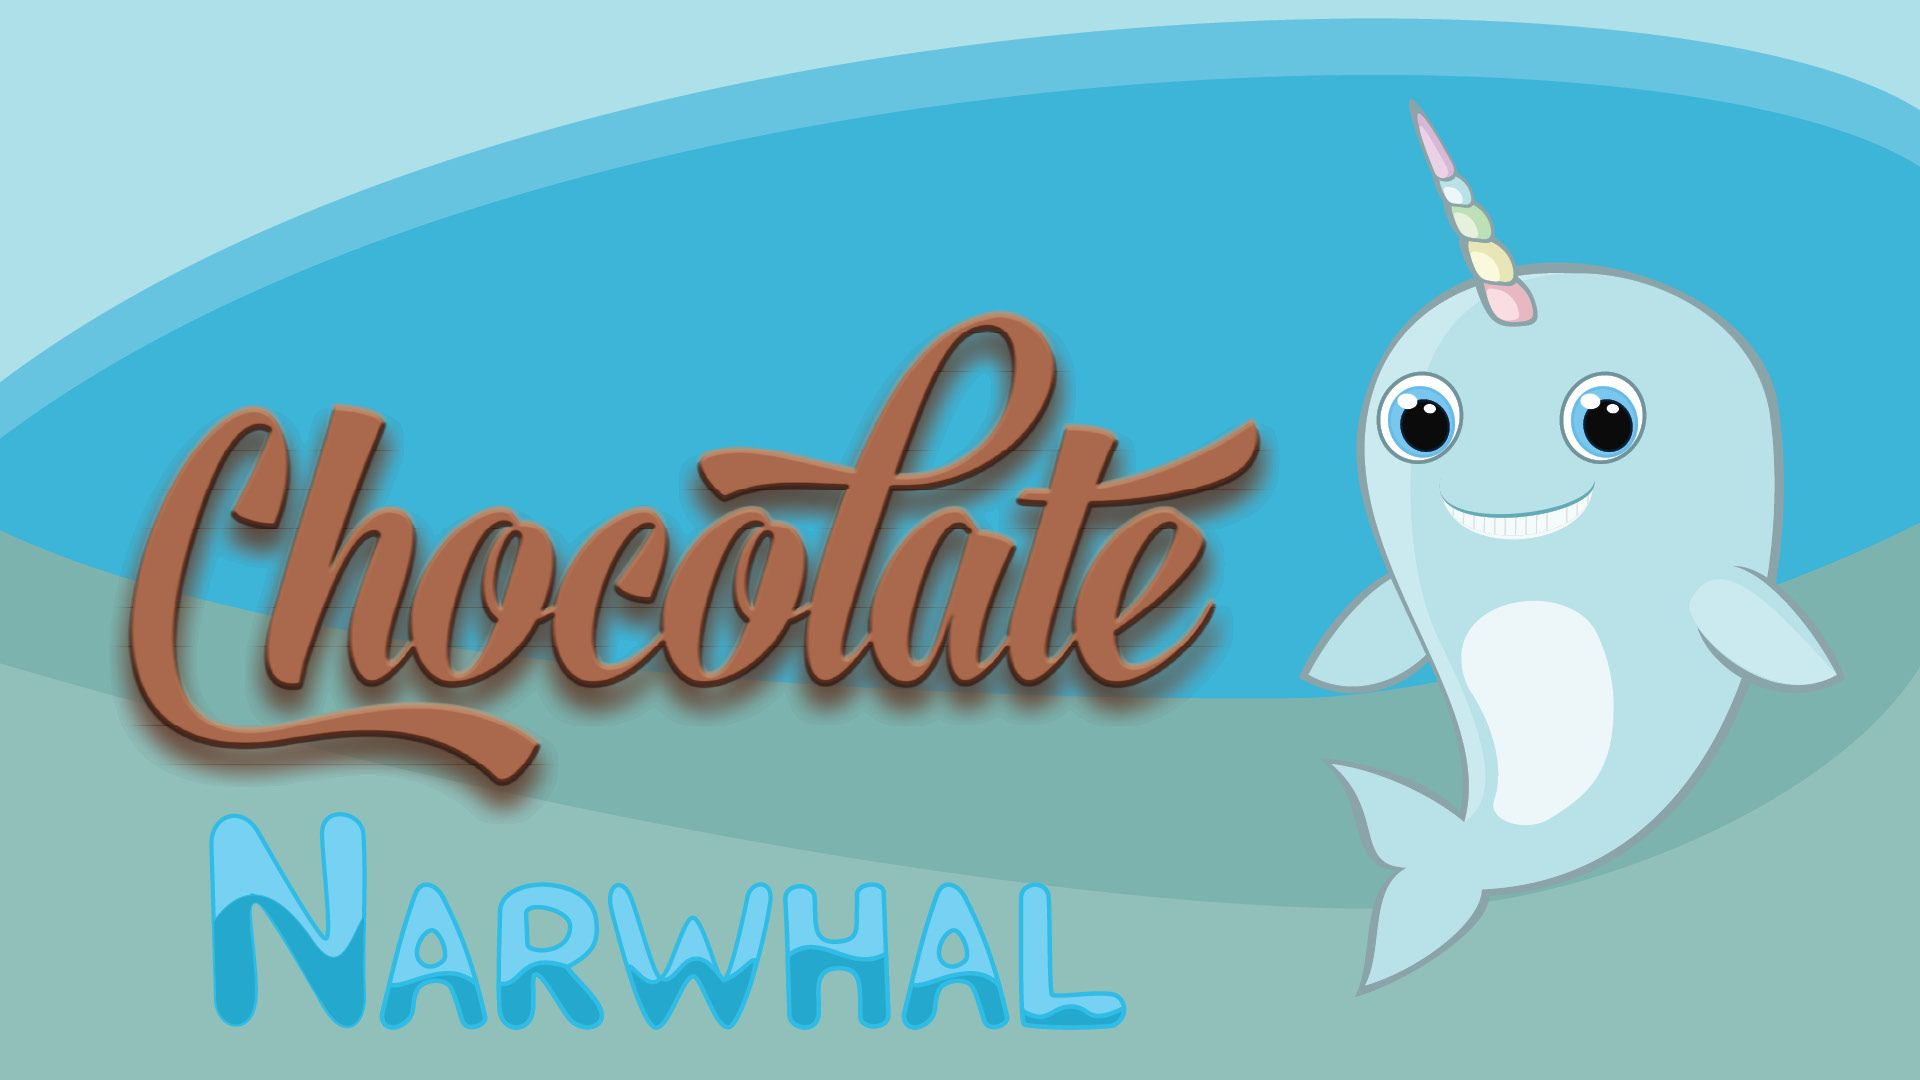 Summer Sweets: Chocolate Narwhals at Patchogue-Medford Library